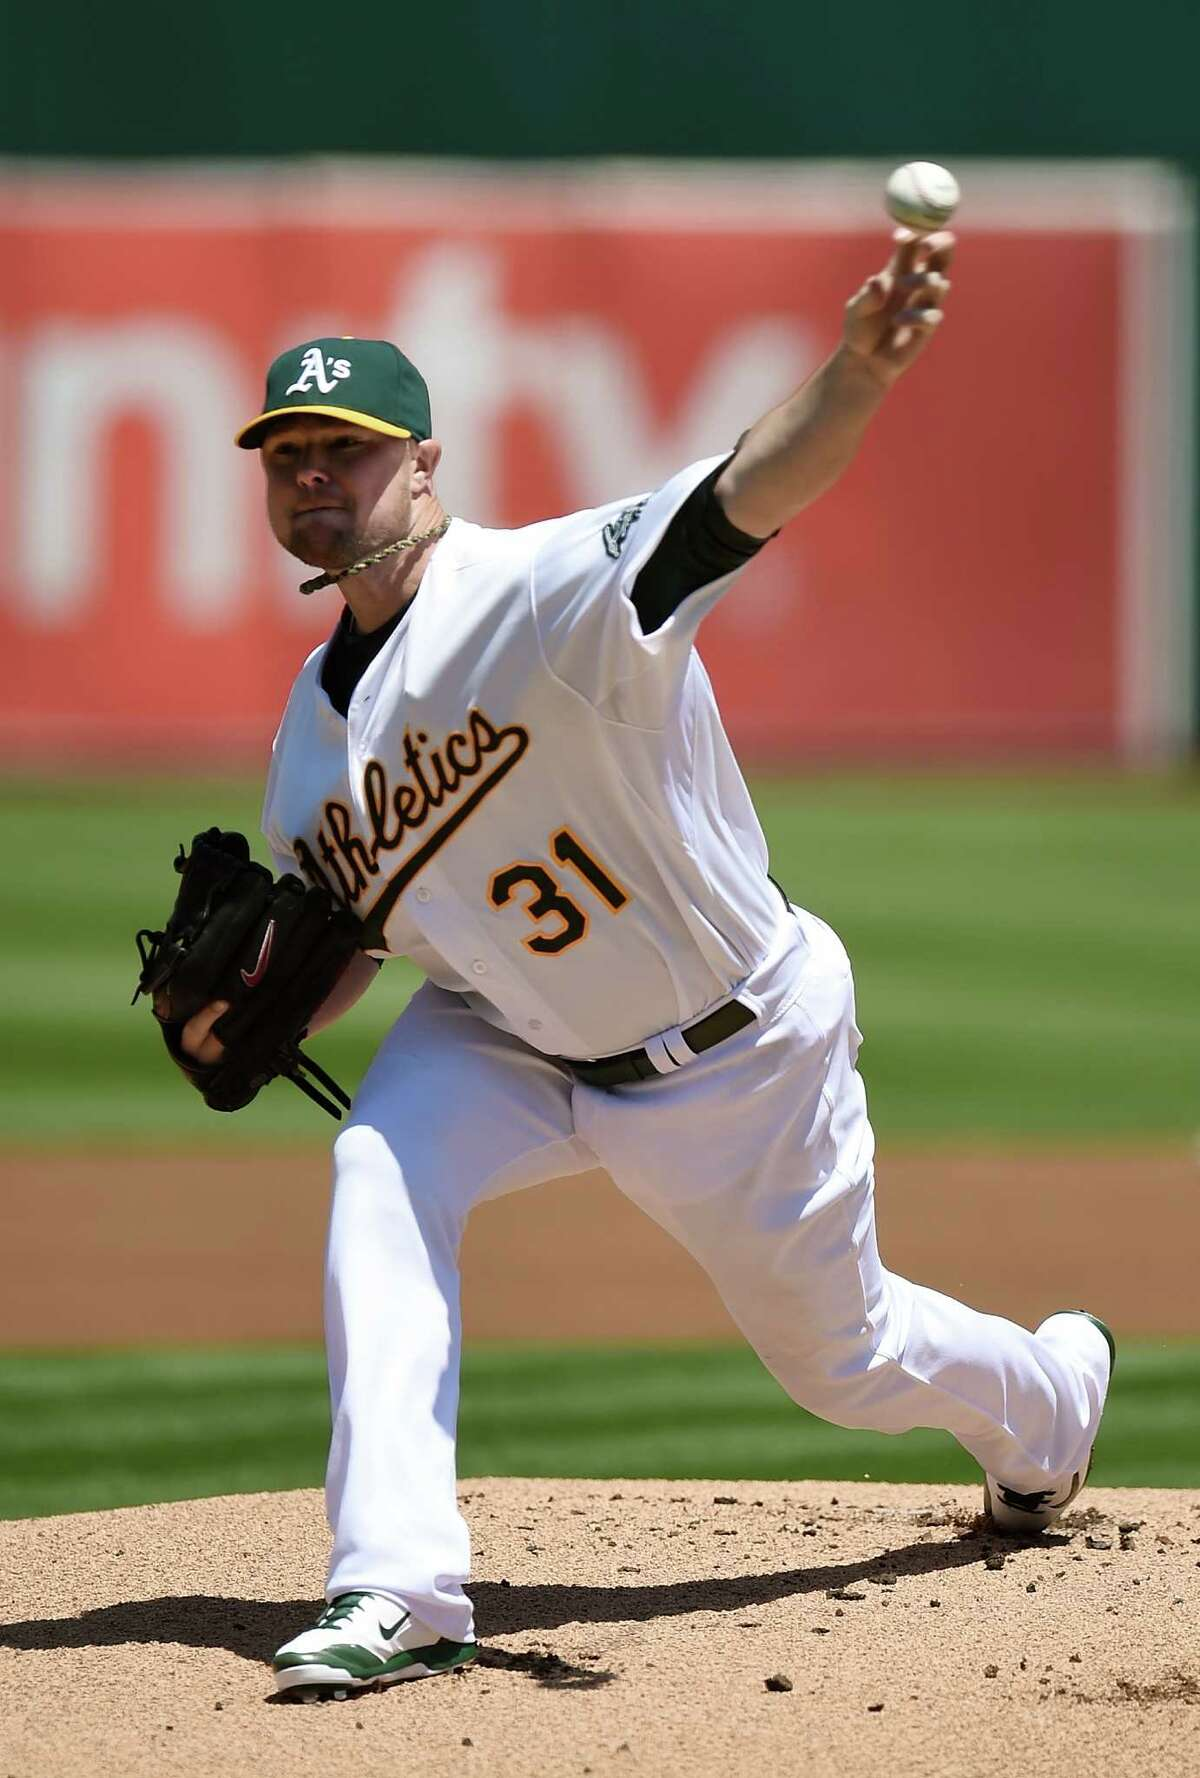 OAKLAND, CA - AUGUST 02: Jon Lester #31 of the Oakland Athletics pitches against the Kansas City Royals in the top of the first inning at O.co Coliseum on August 2, 2014 in Oakland, California. (Photo by Thearon W. Henderson/Getty Images) ORG XMIT: 477587309